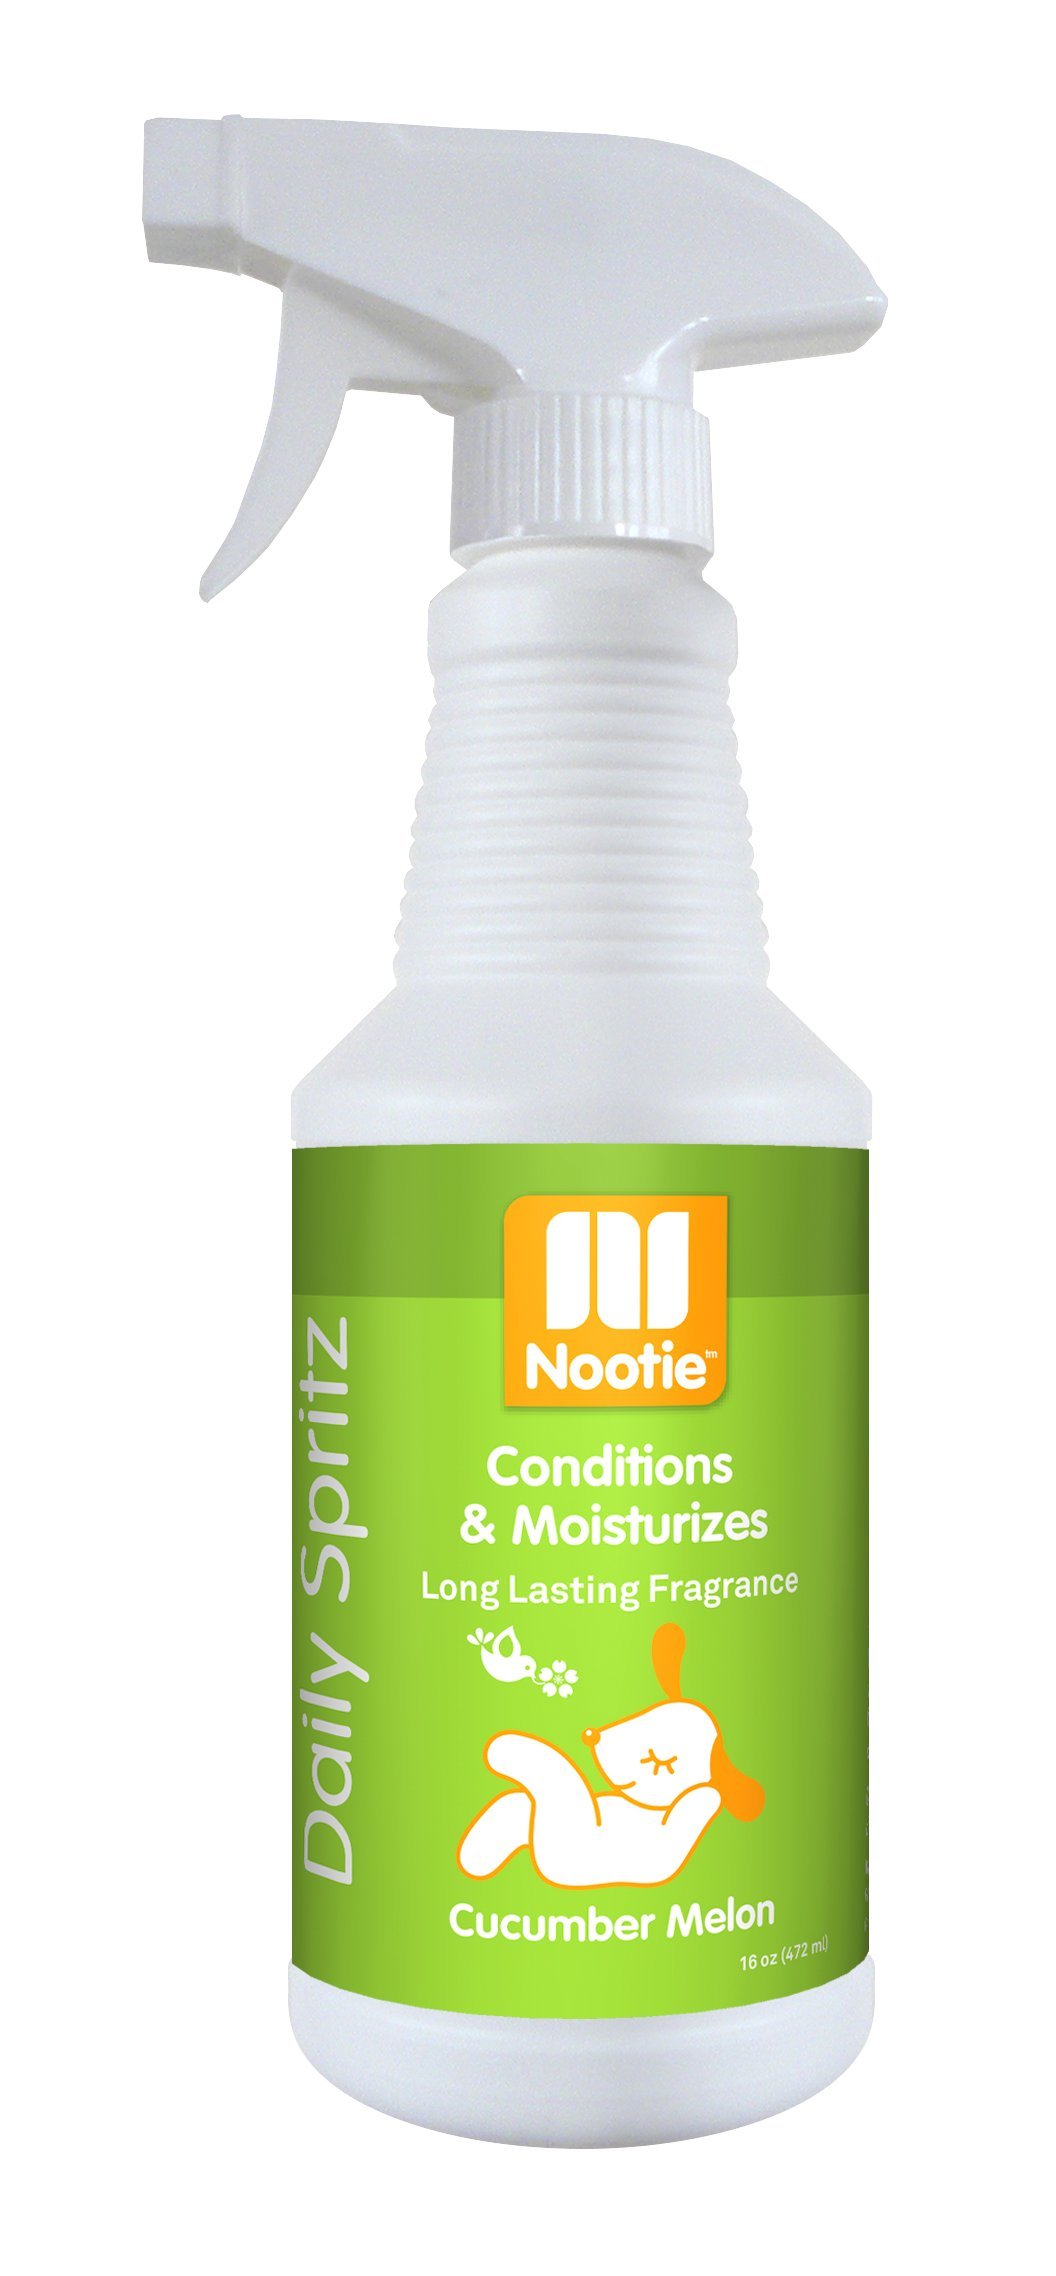 Nootie Daily Spritz Conditions and Moisturizes, Cucumber Melon, 16 Ounce